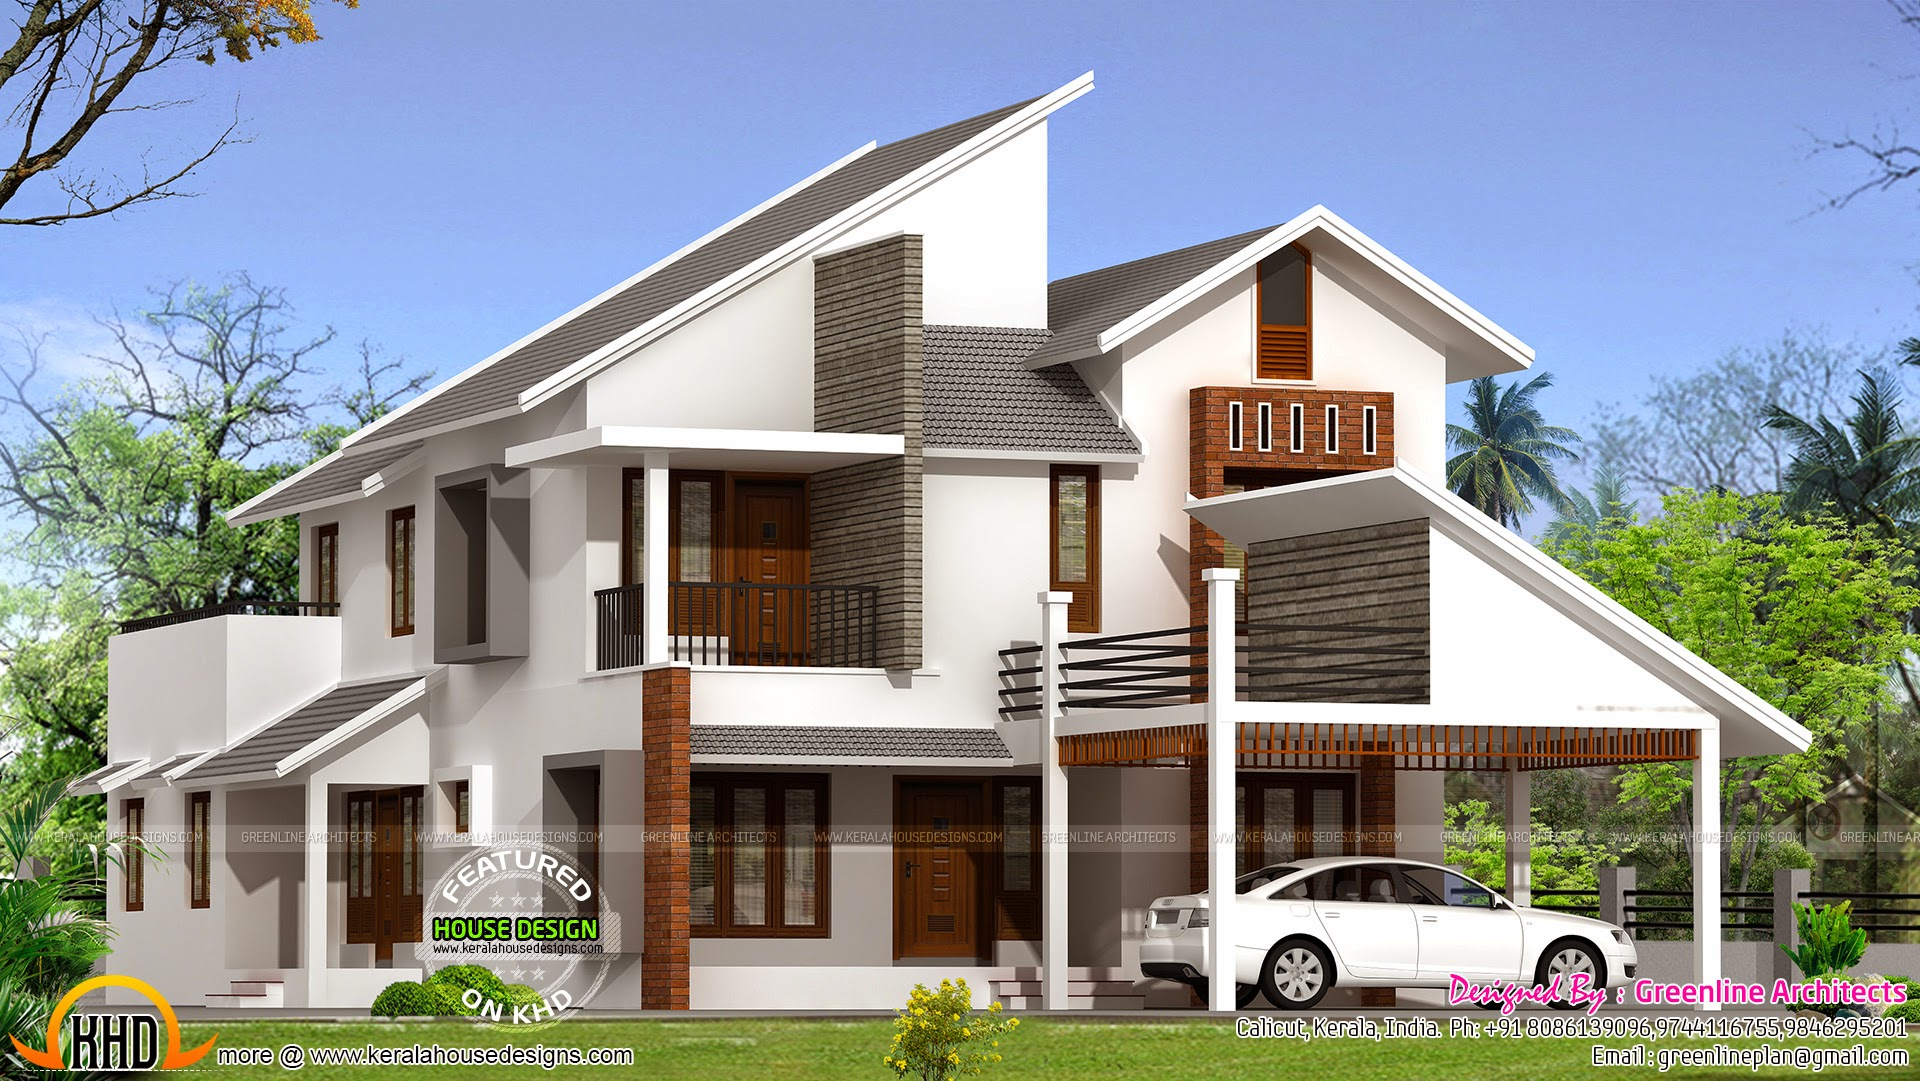 New modern house plan kerala home design and floor plans for Kerala house plans and designs